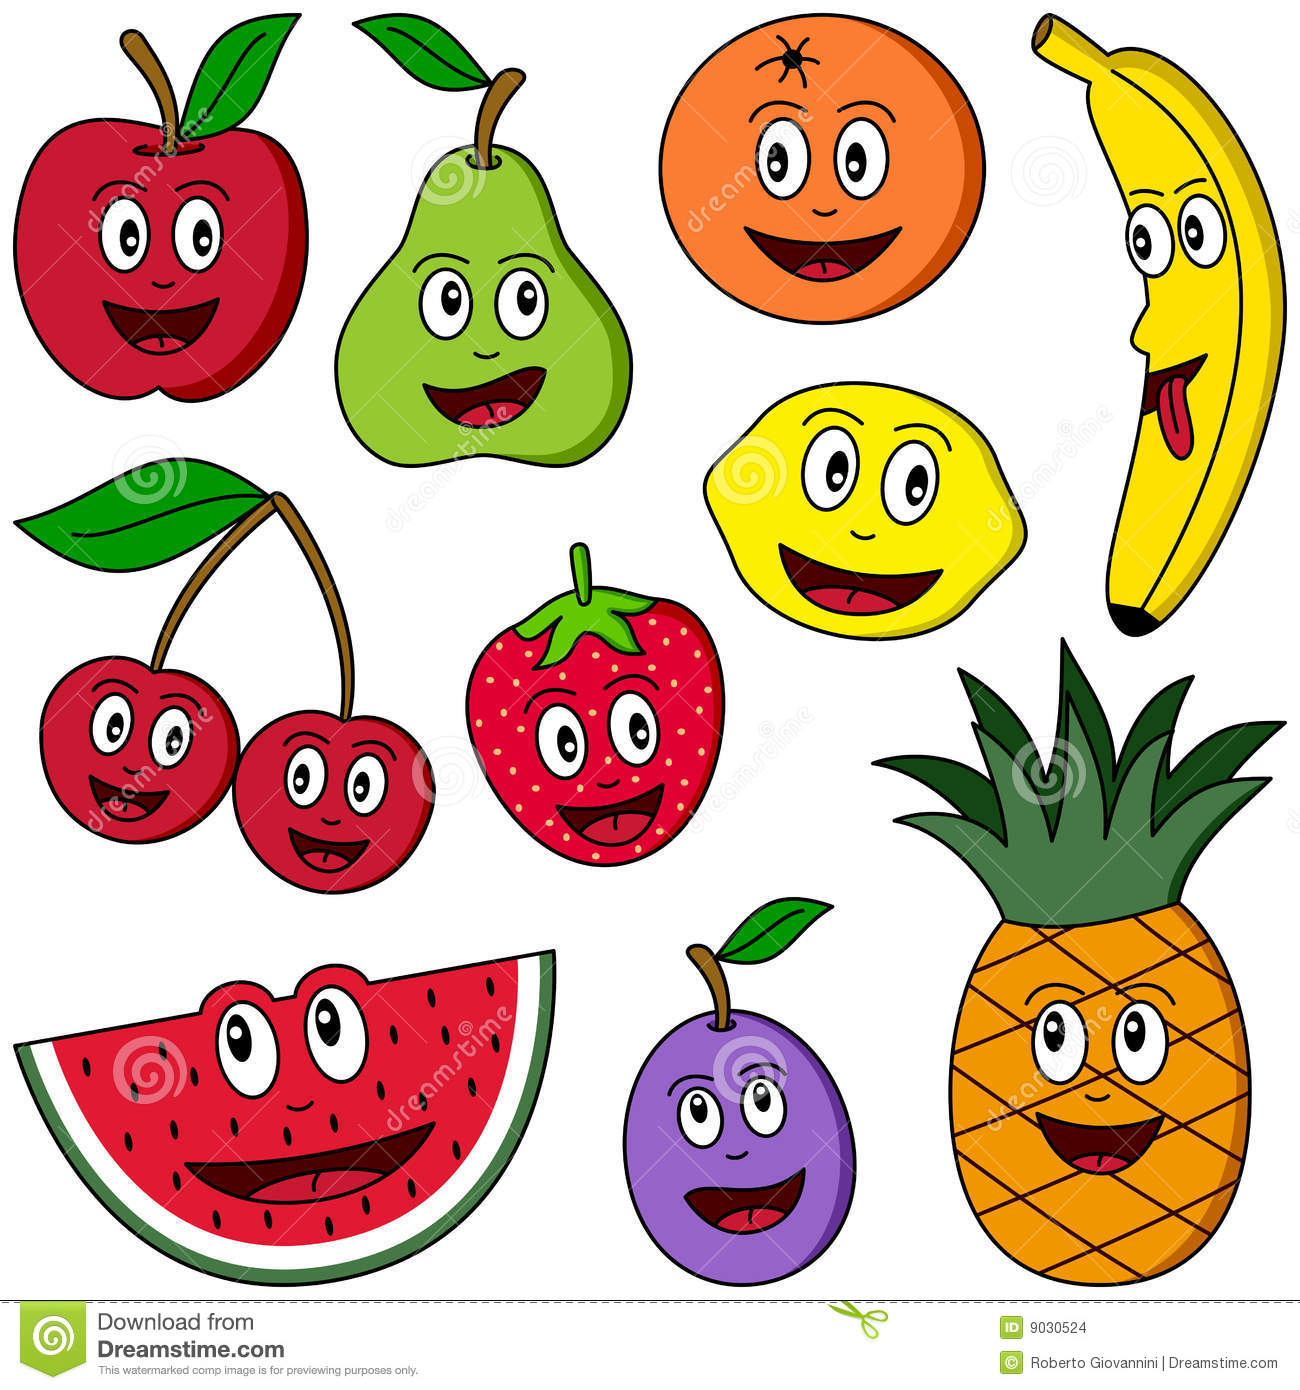 Fruit drawing at free for personal use - Dessins fruits ...